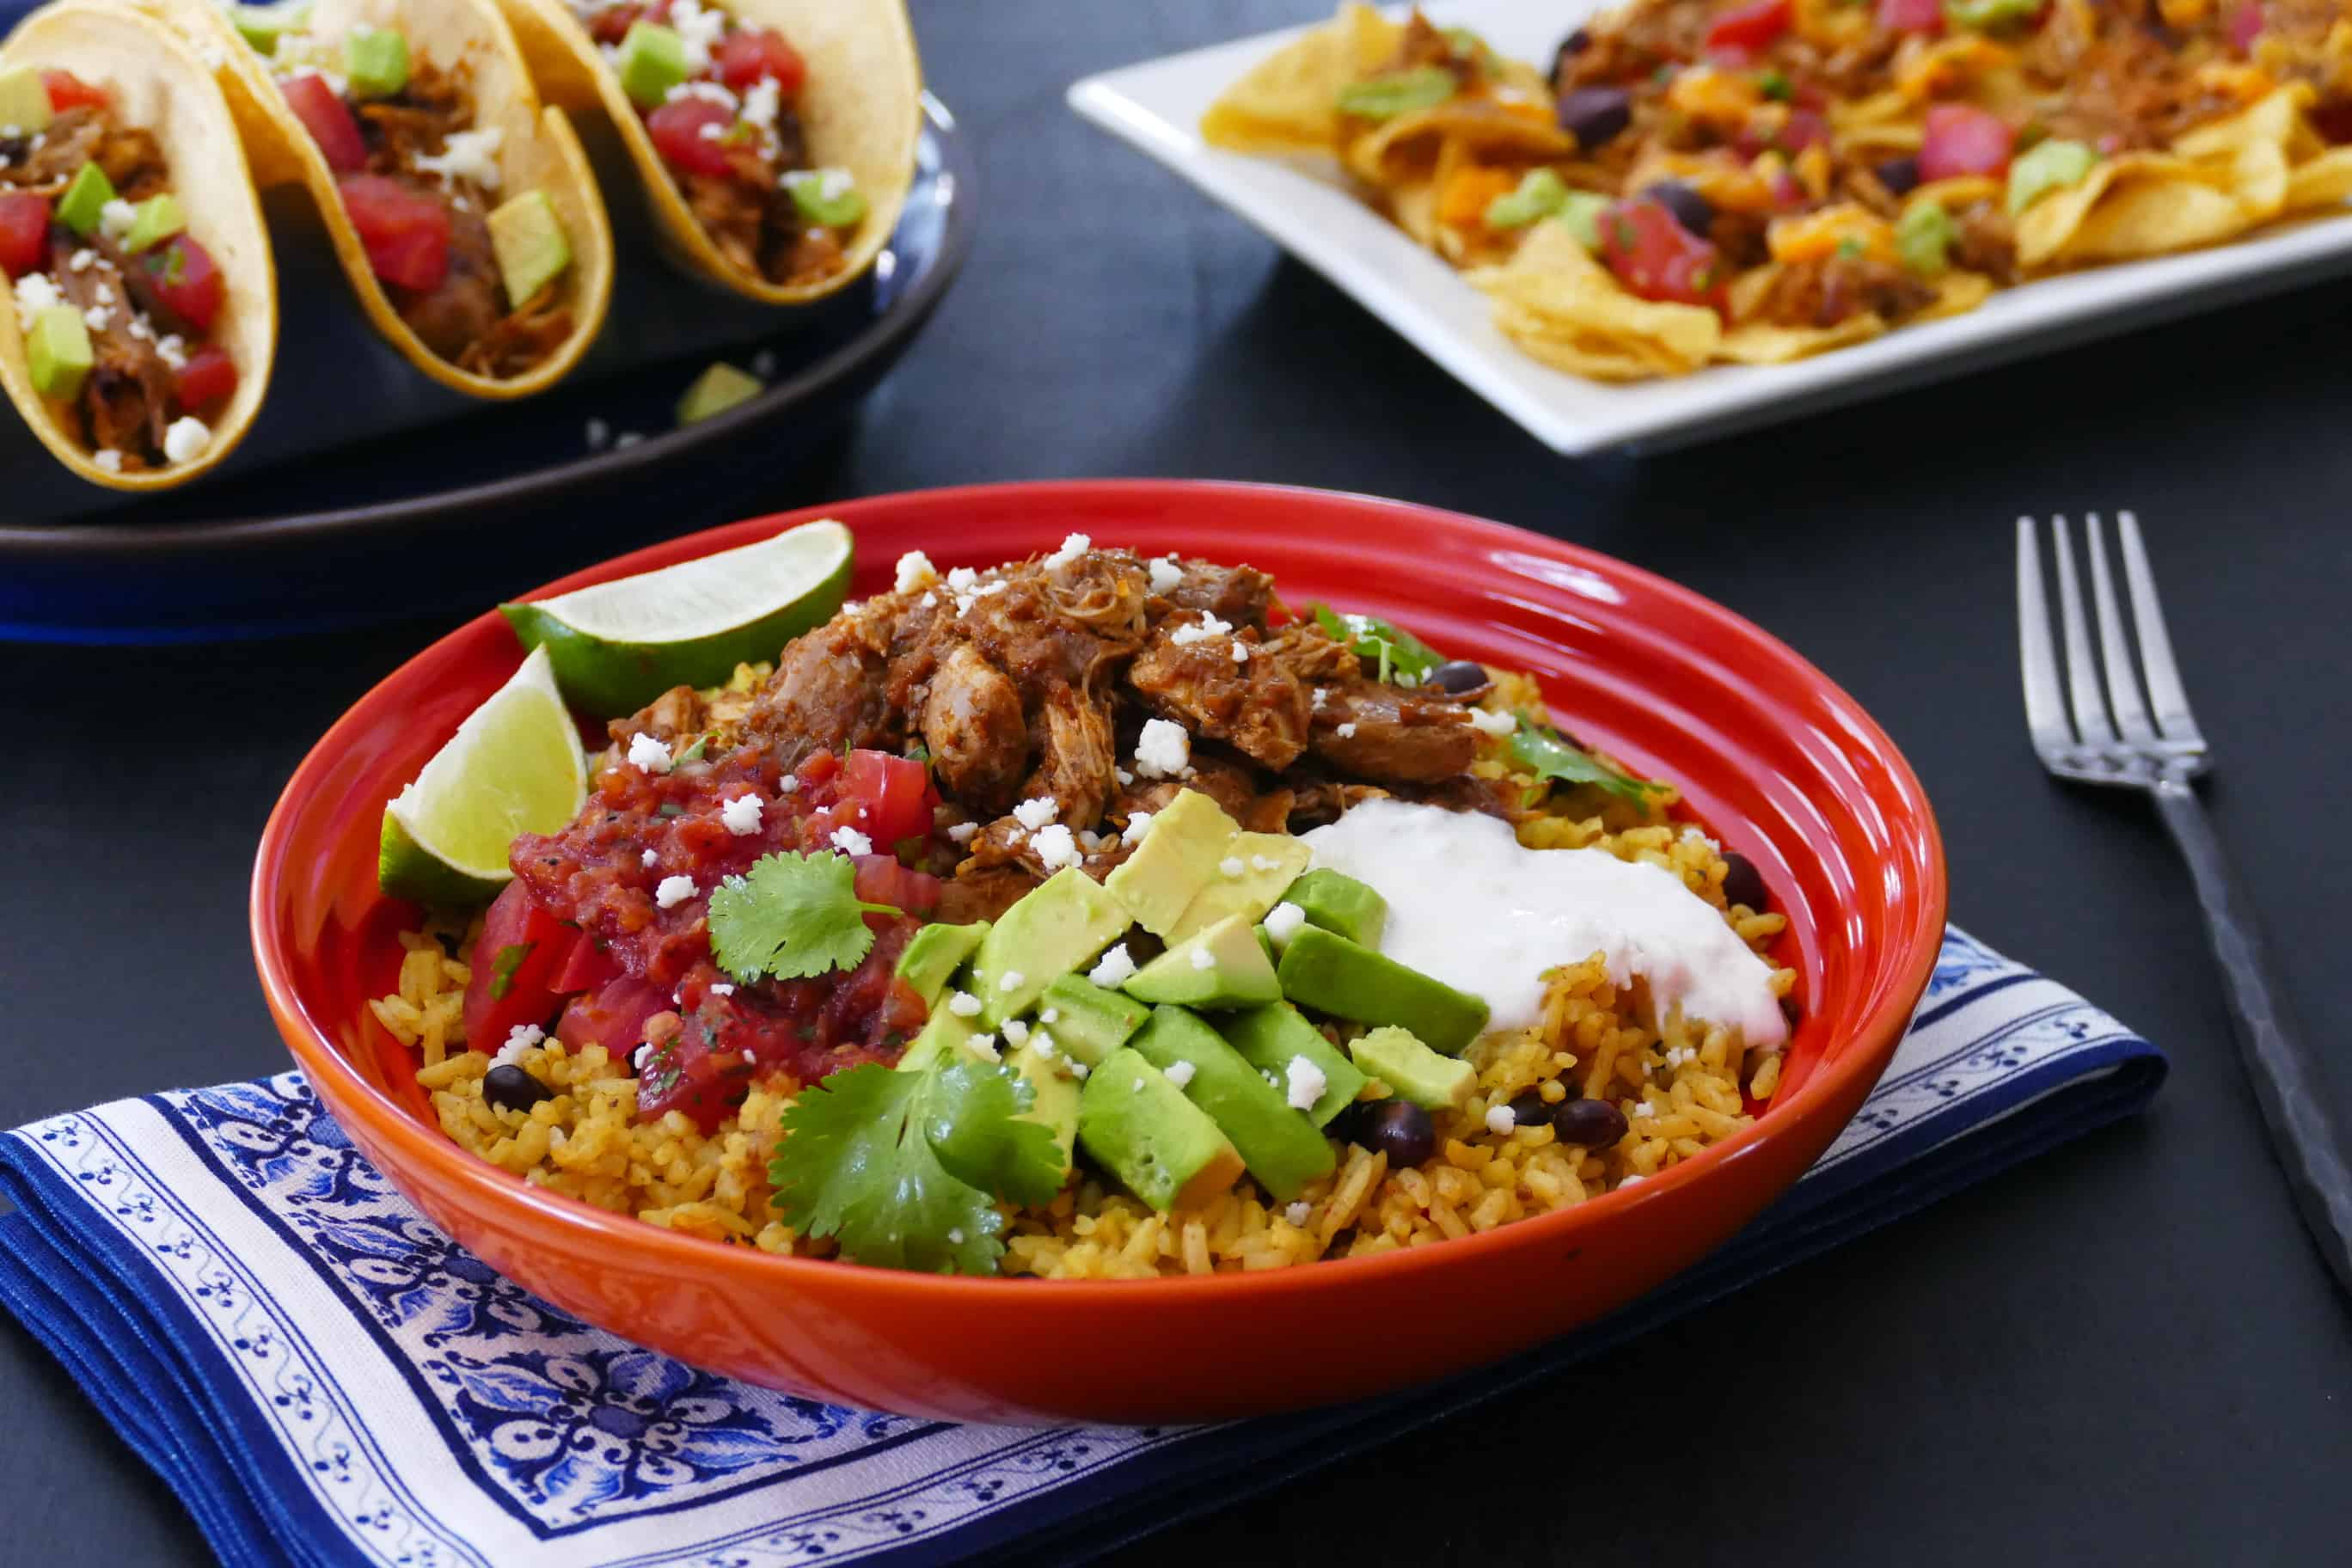 Instant Pot Chicken Tinga rice bowl in orange bowl with chicken tinga tacos and nachos in the background - Paint the Kitchen Red